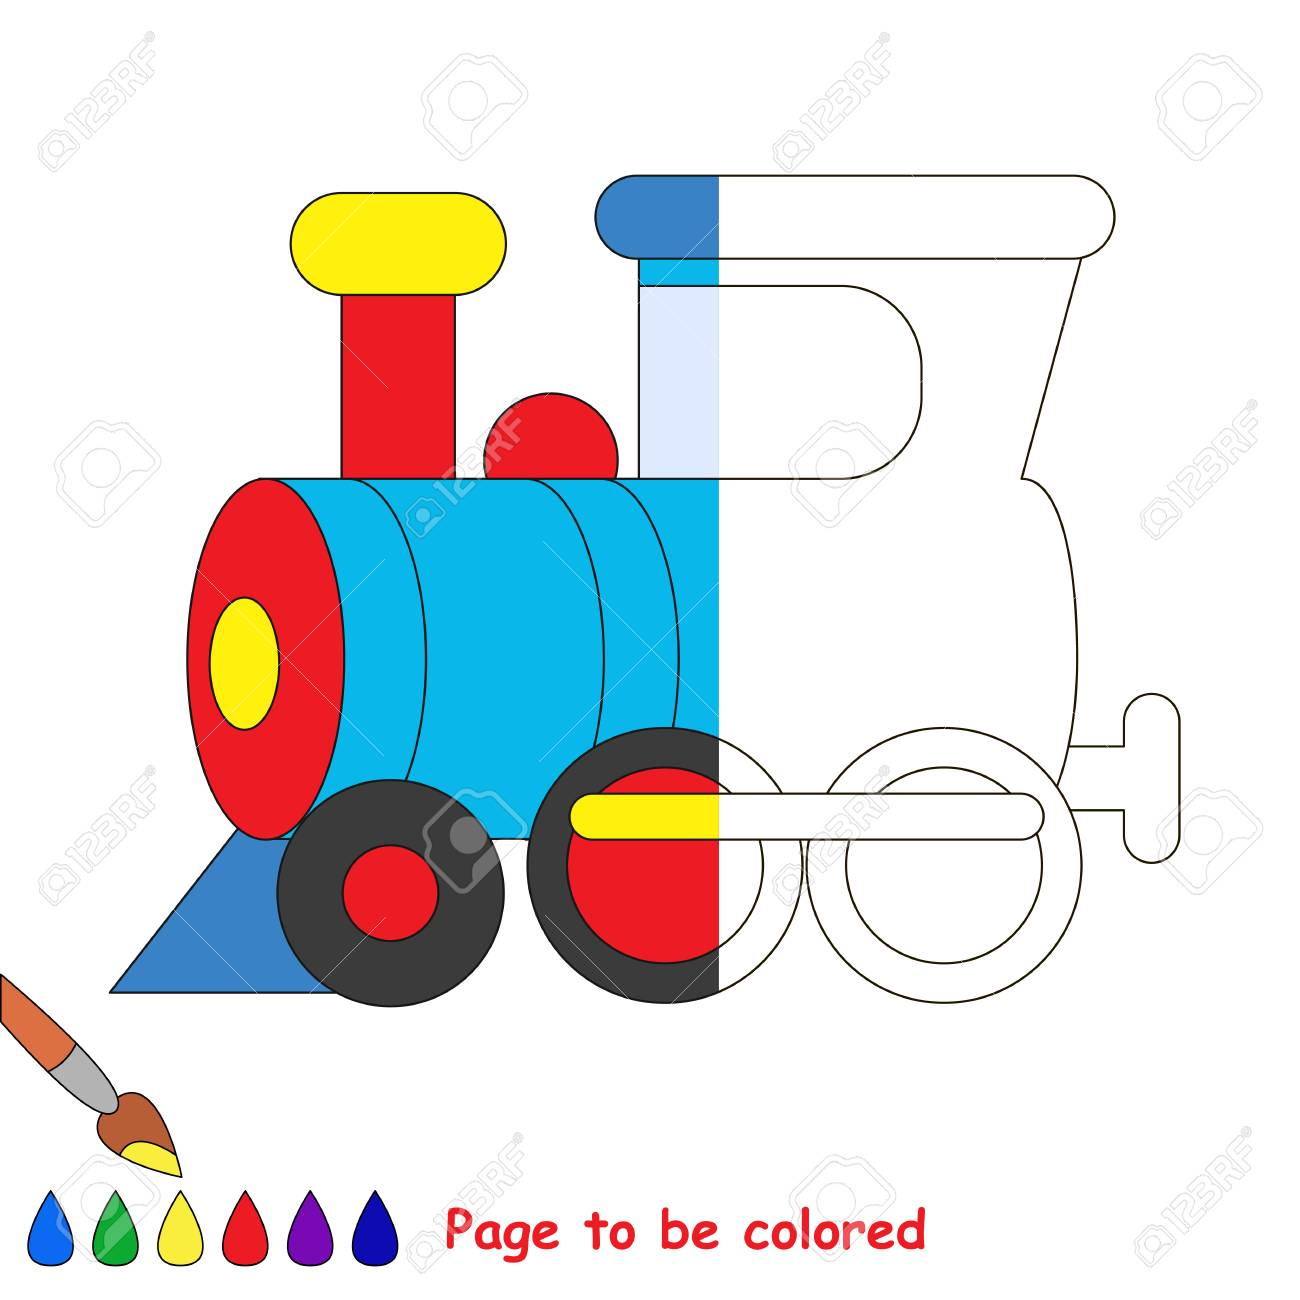 Train To Be Colored, The Coloring Book To Educate Preschool Kids ...